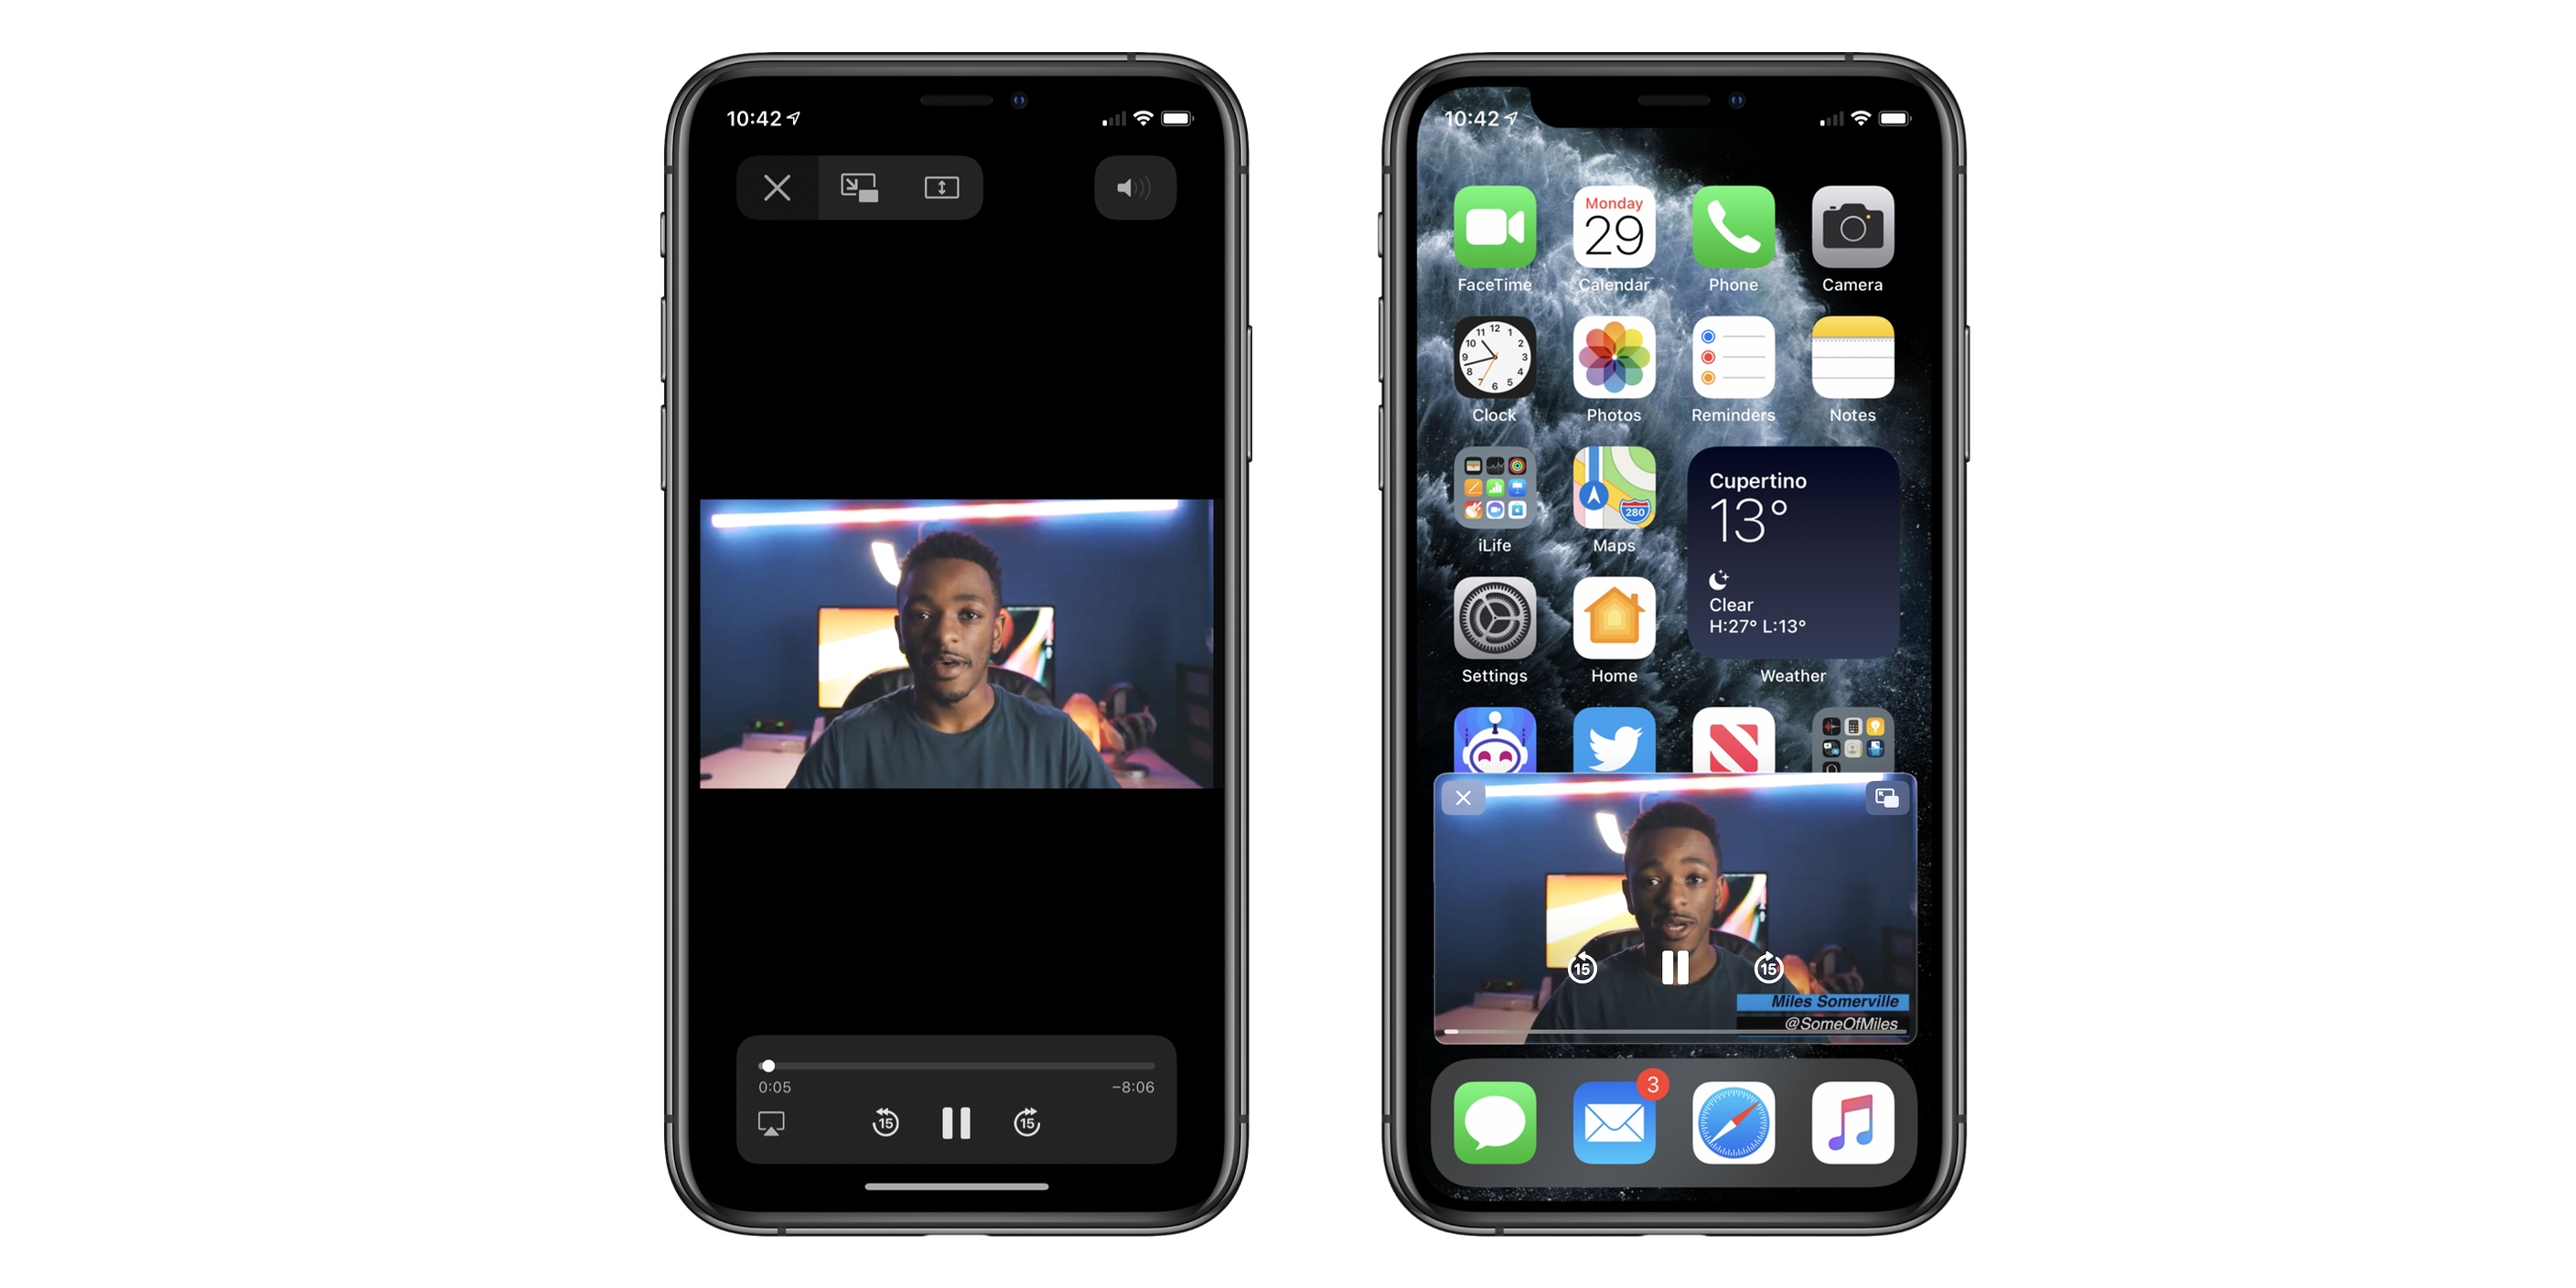 iOS 14: How to do Picture in Picture video multitasking on iPhone - 9to5Mac